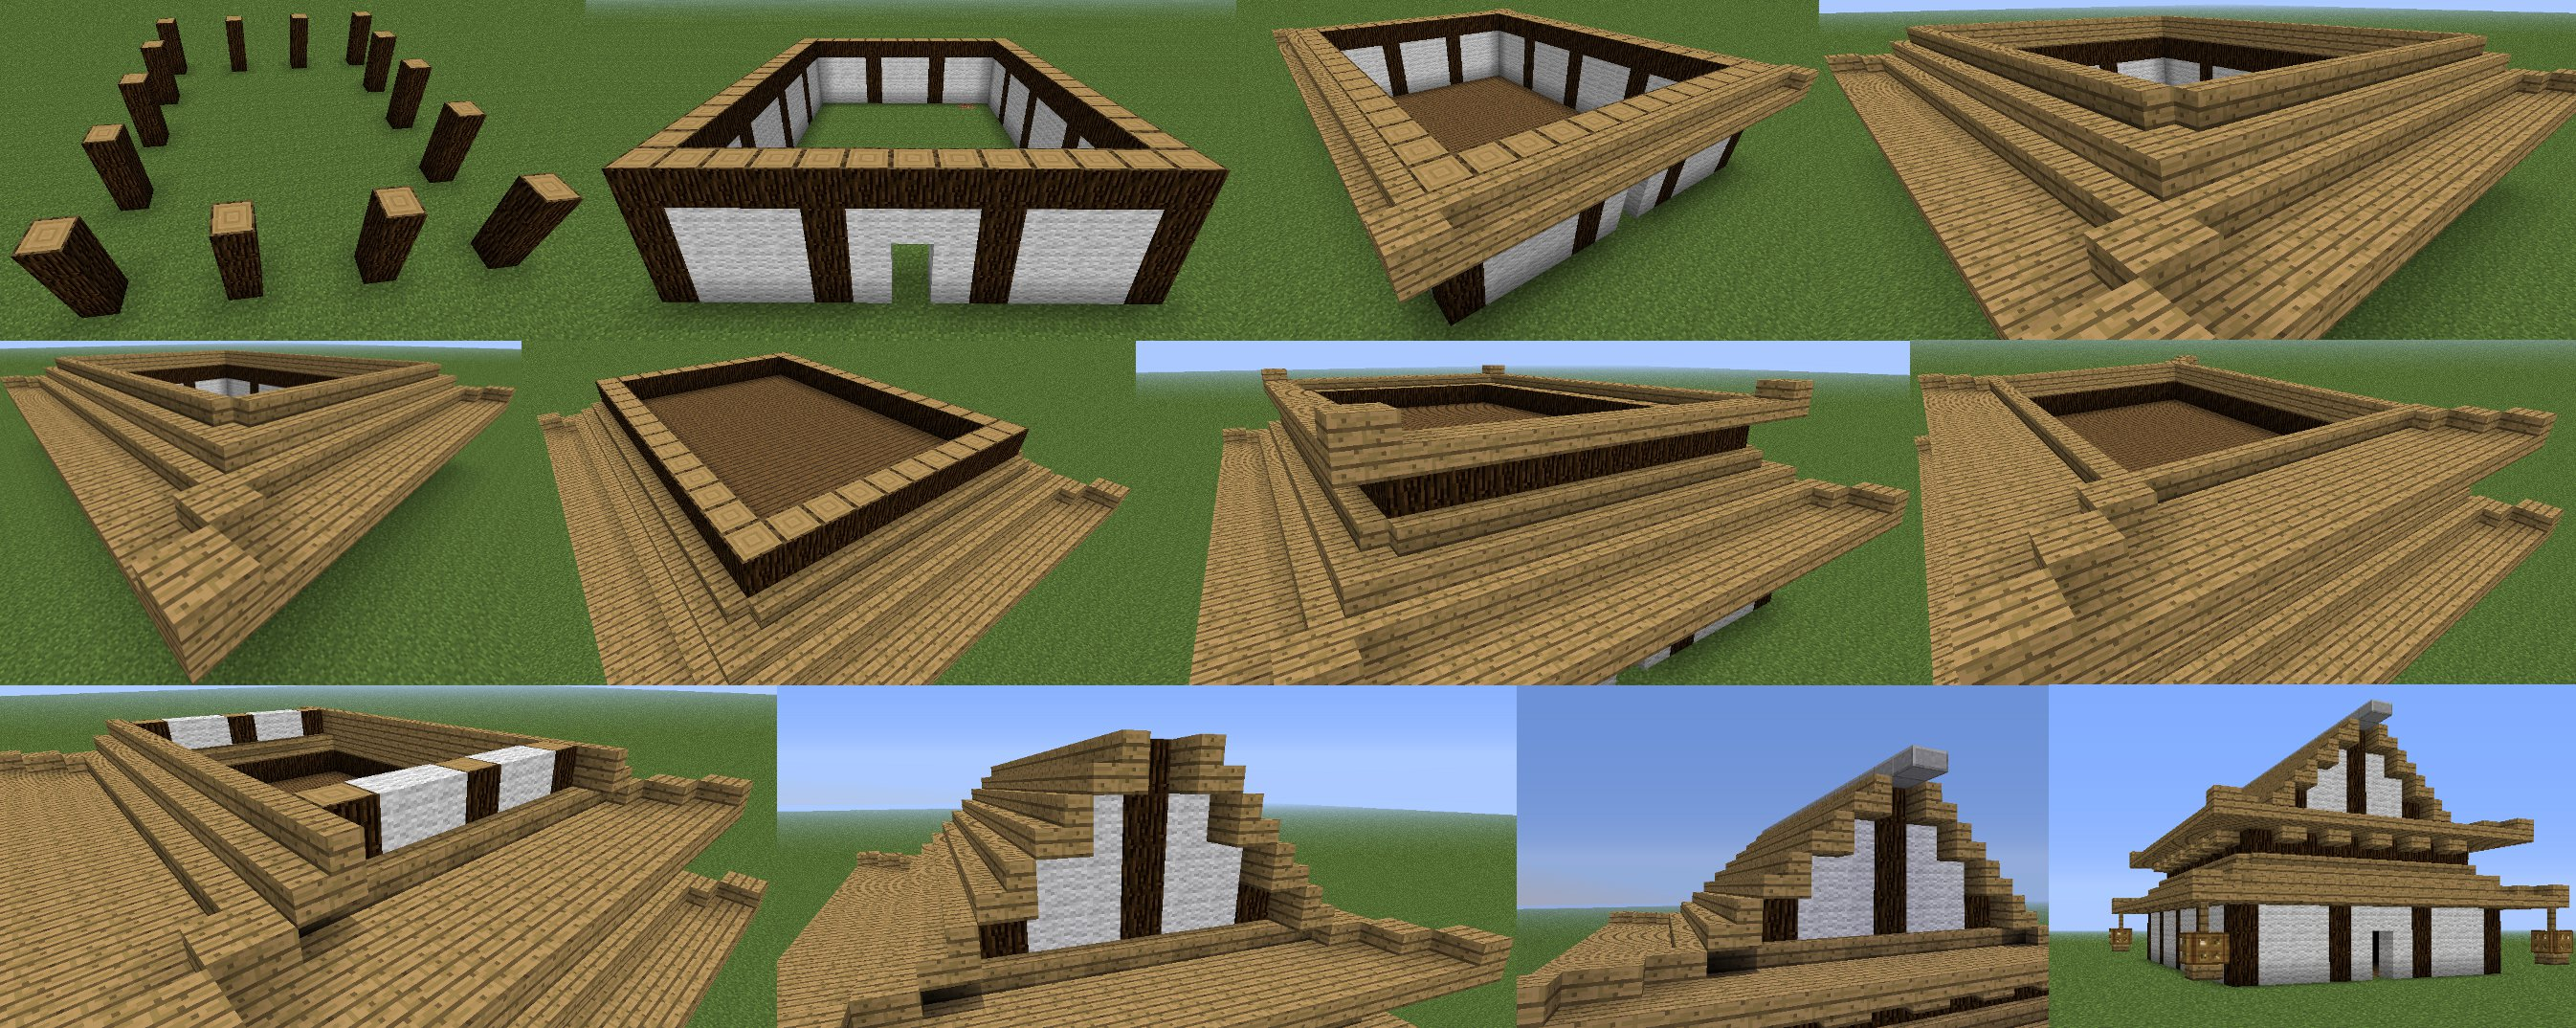 Japanese building style in minecraft minecraft guides for How to build a house step by step